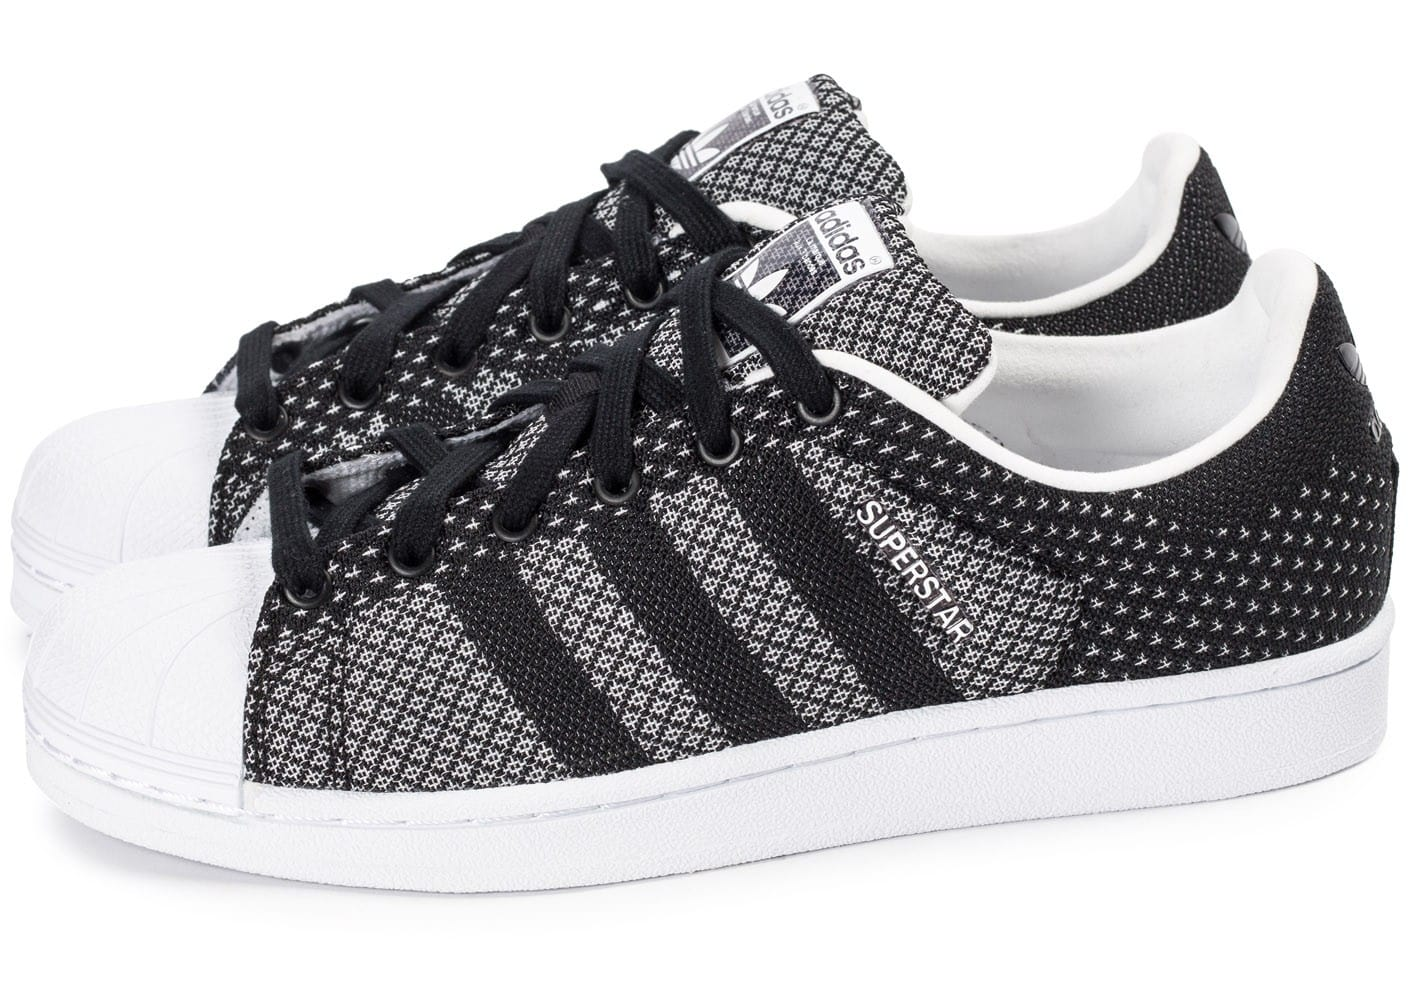 adidas superstar weave homme soldes adidas superstar weave homme chaussures adidas superstar. Black Bedroom Furniture Sets. Home Design Ideas